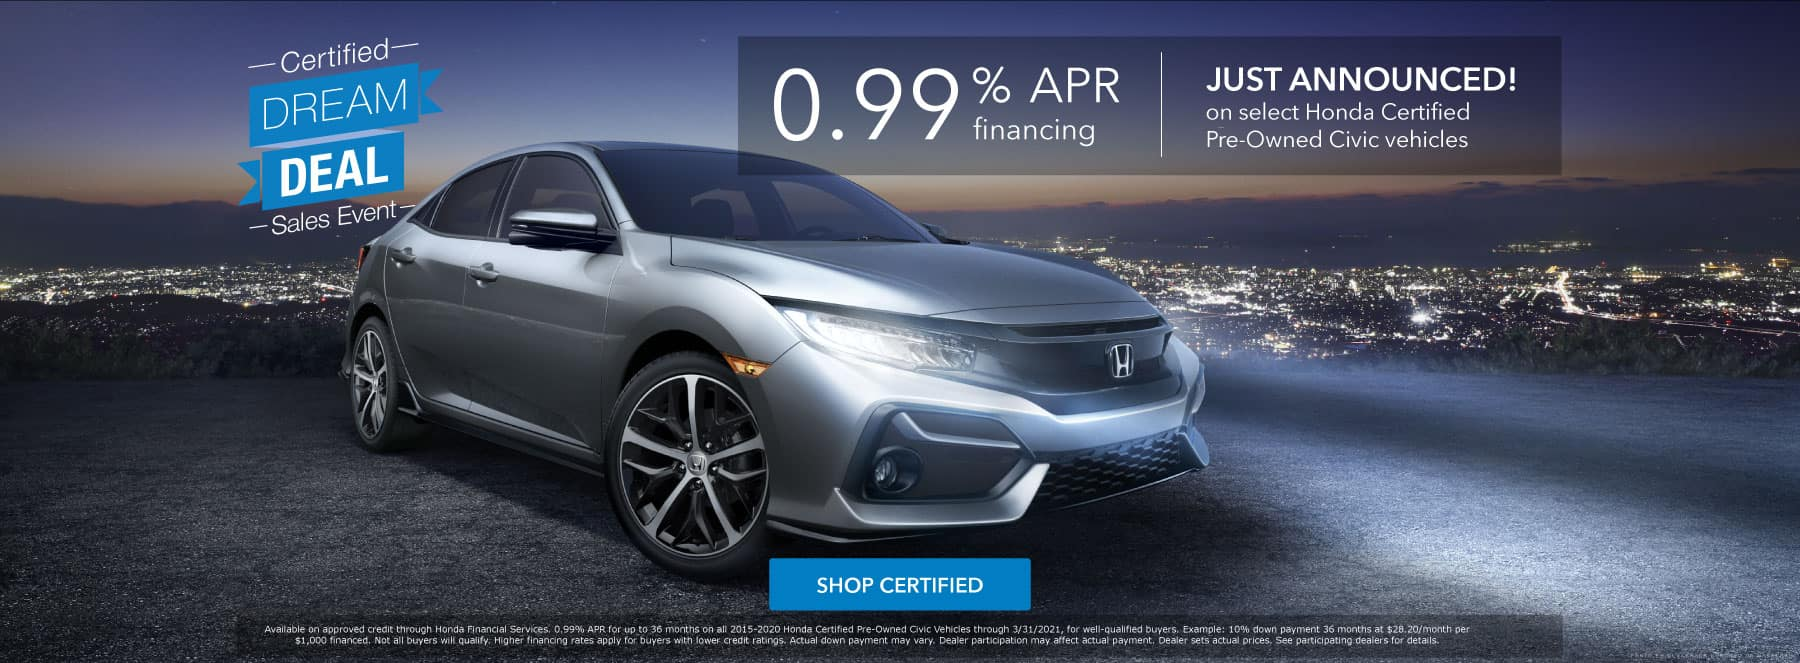 Honda Certified Dream Deal - 0.99% APR on select Honda Certified Pre-Owned Civic vehicles